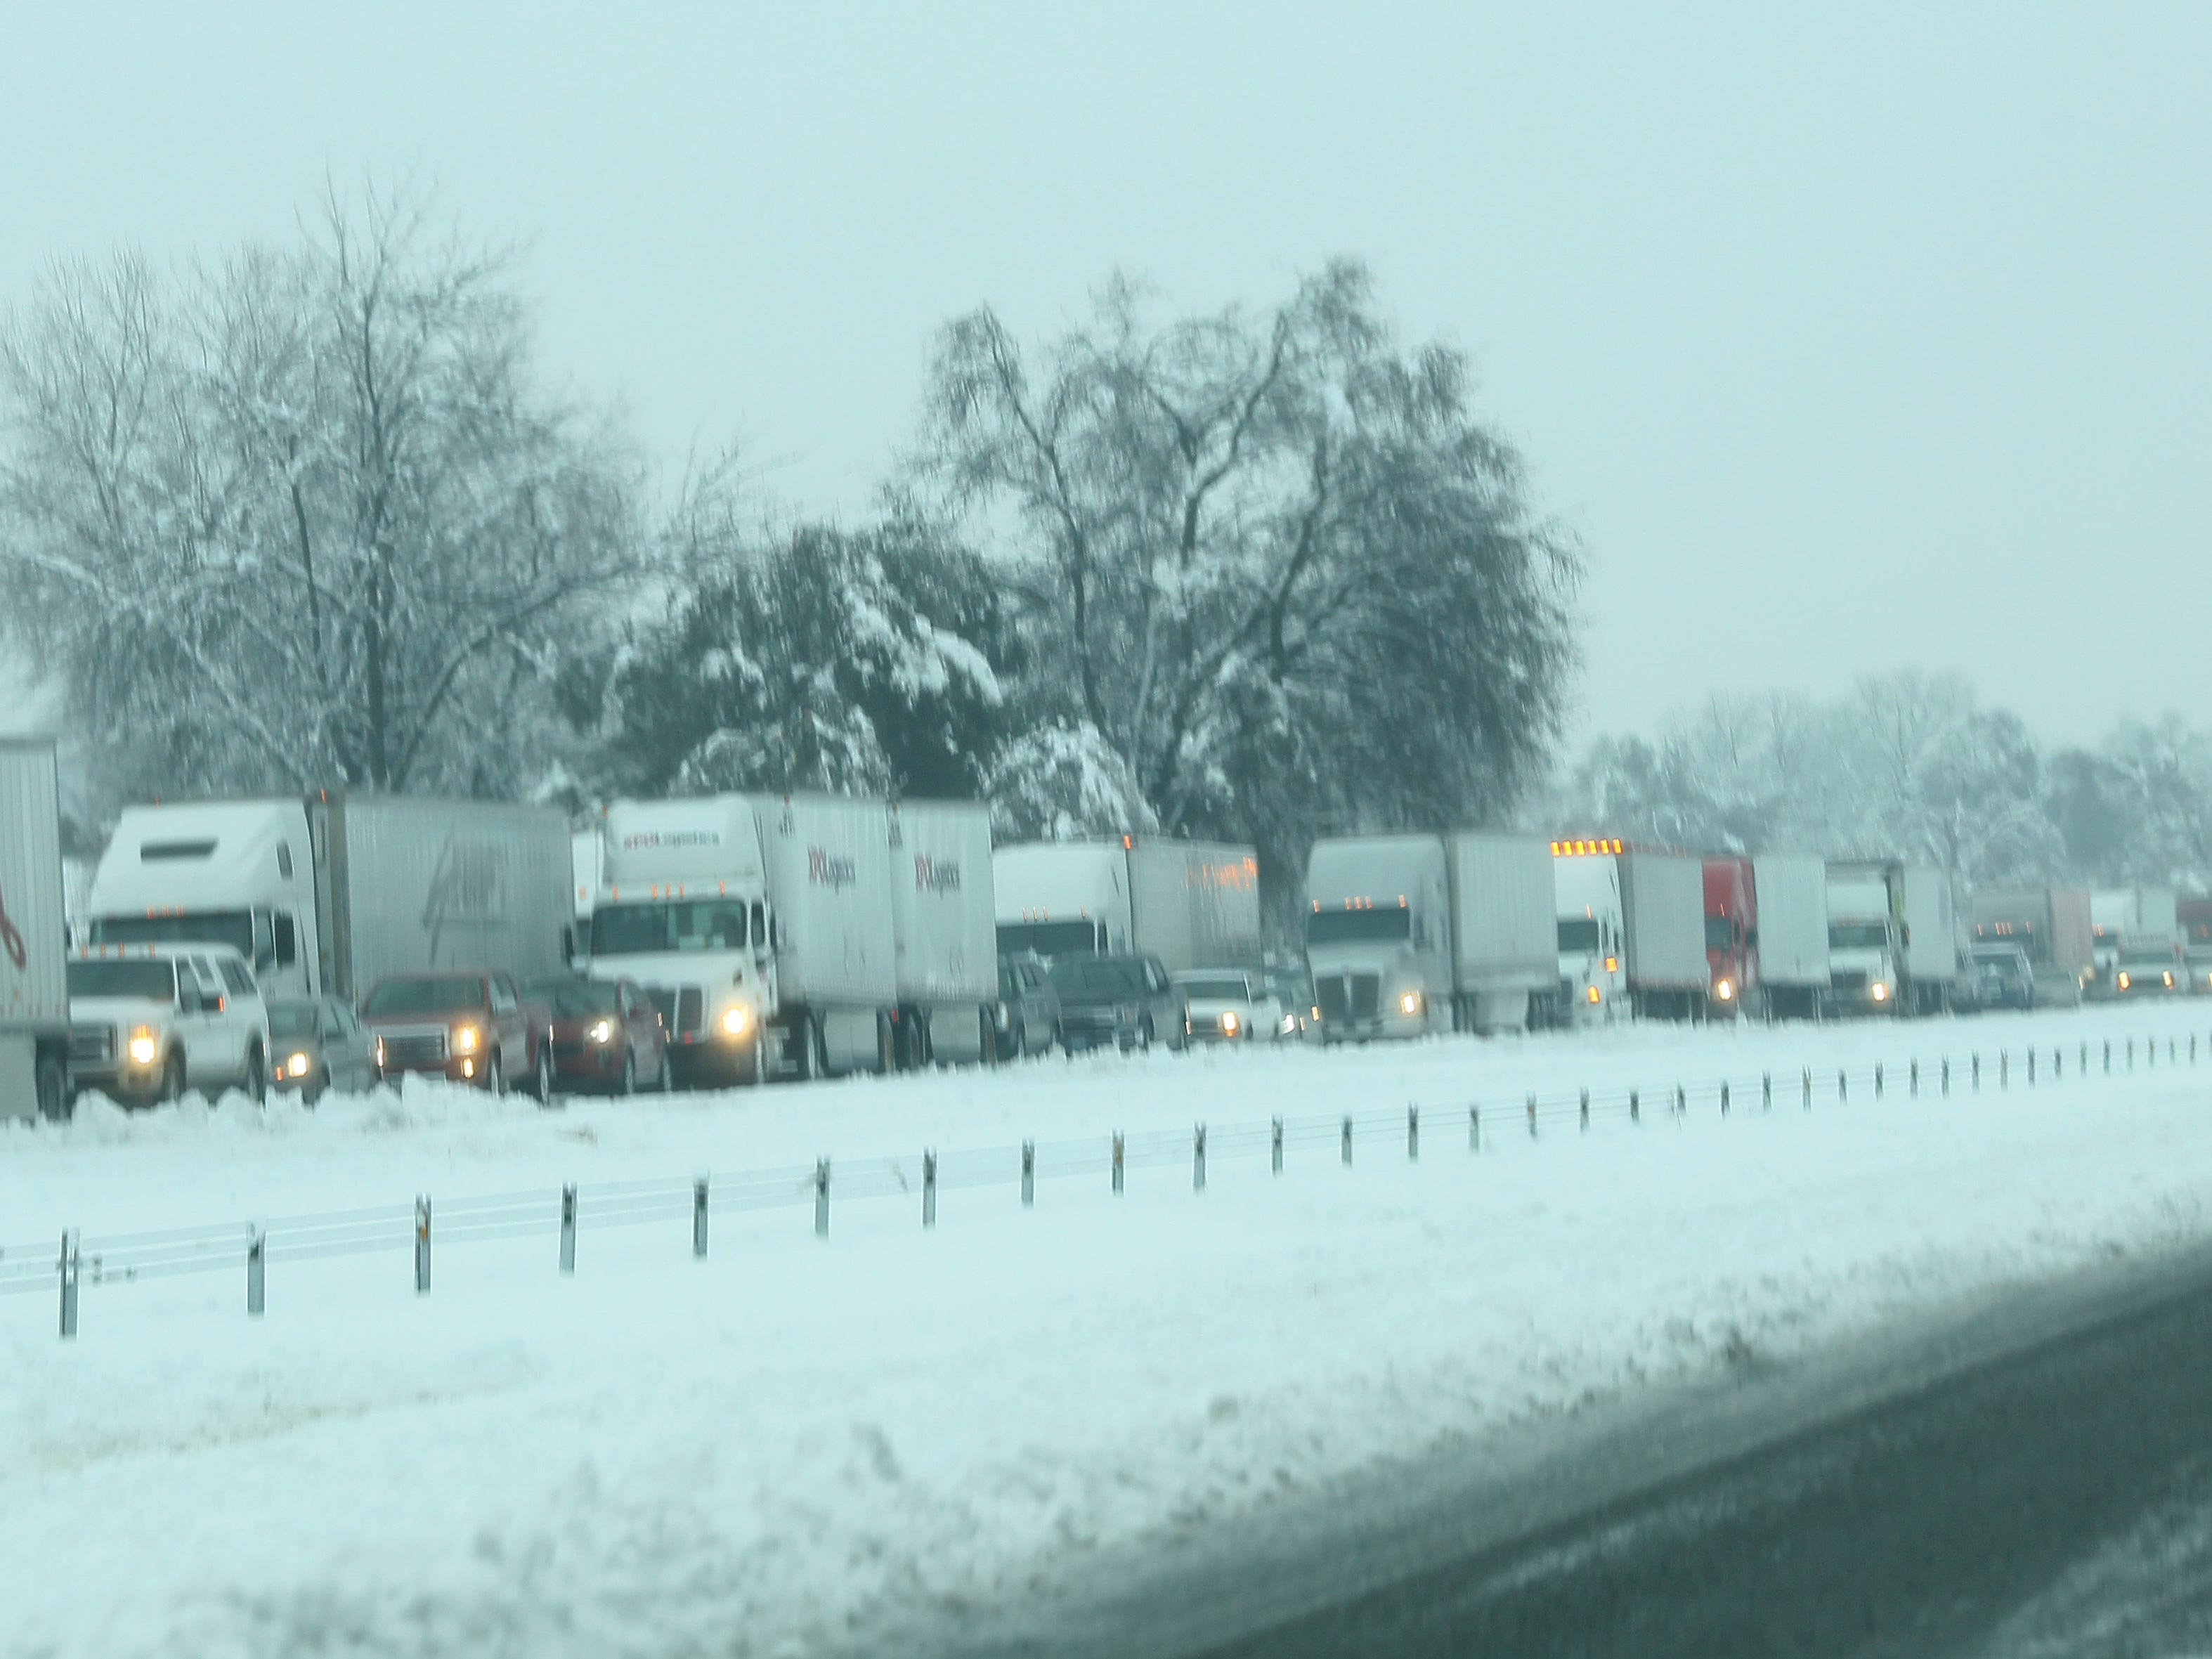 Traffic is stopped northbound Interstate 5 at Knighton Road due to snow from a winter storm Wednesday, Feb. 13, 2019 in Redding, California. (Hung T. Vu/Special to the Record Searchlight)